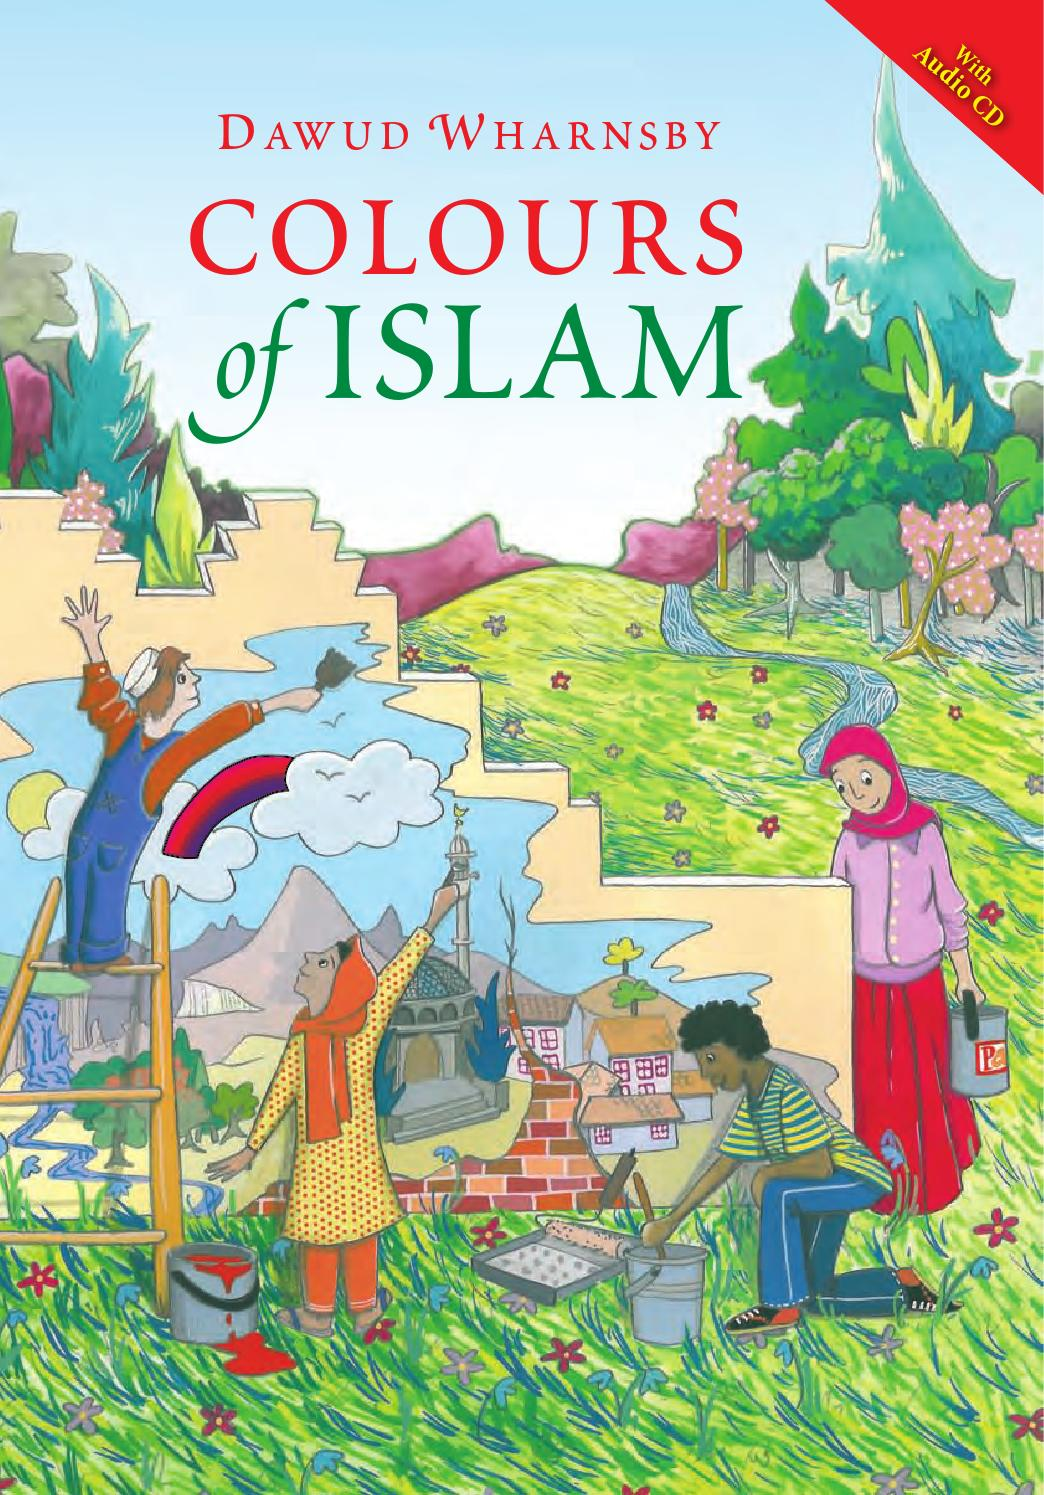 Colours of islam by Dawud Wharnsby by Kube Publishing - issuu